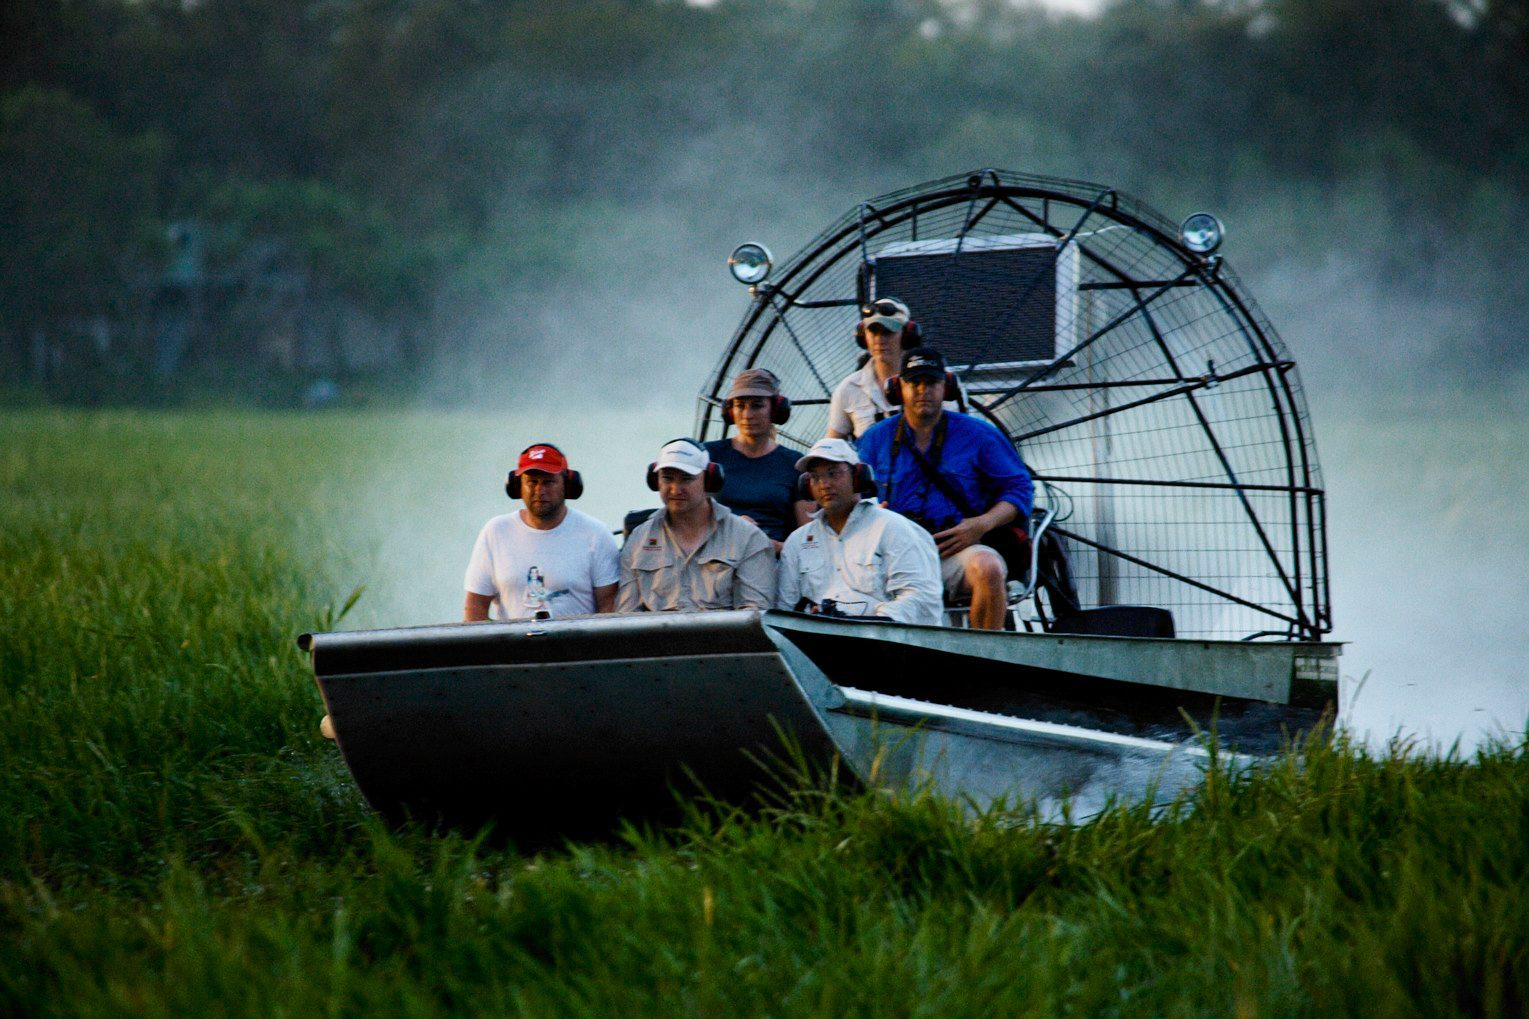 A group of people ride in an airboat across the floodplains in Kakadu National Park on a northern Australia holiday